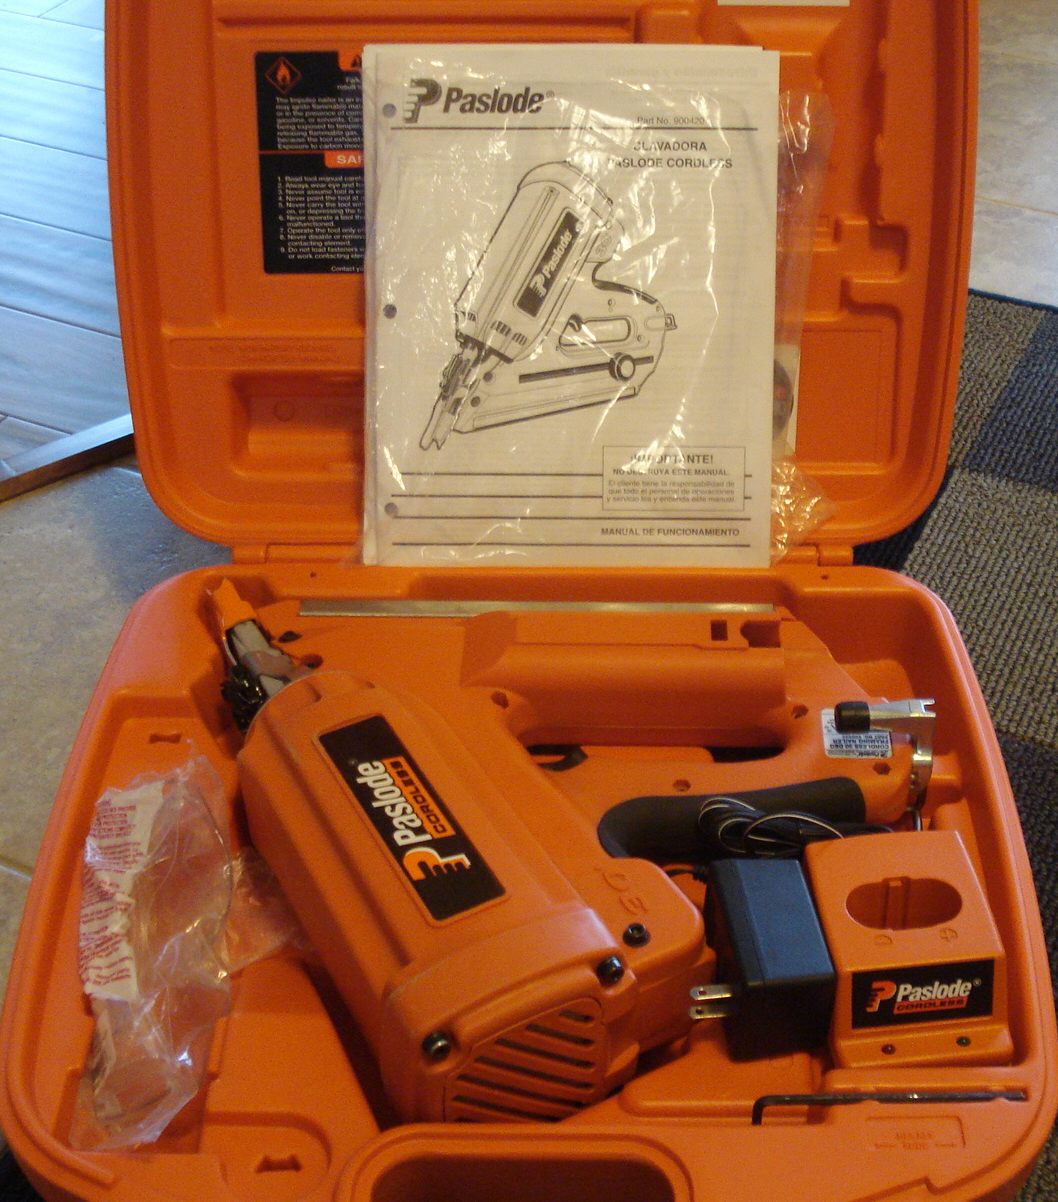 Paslode Cordless Nailers for sale. image 2